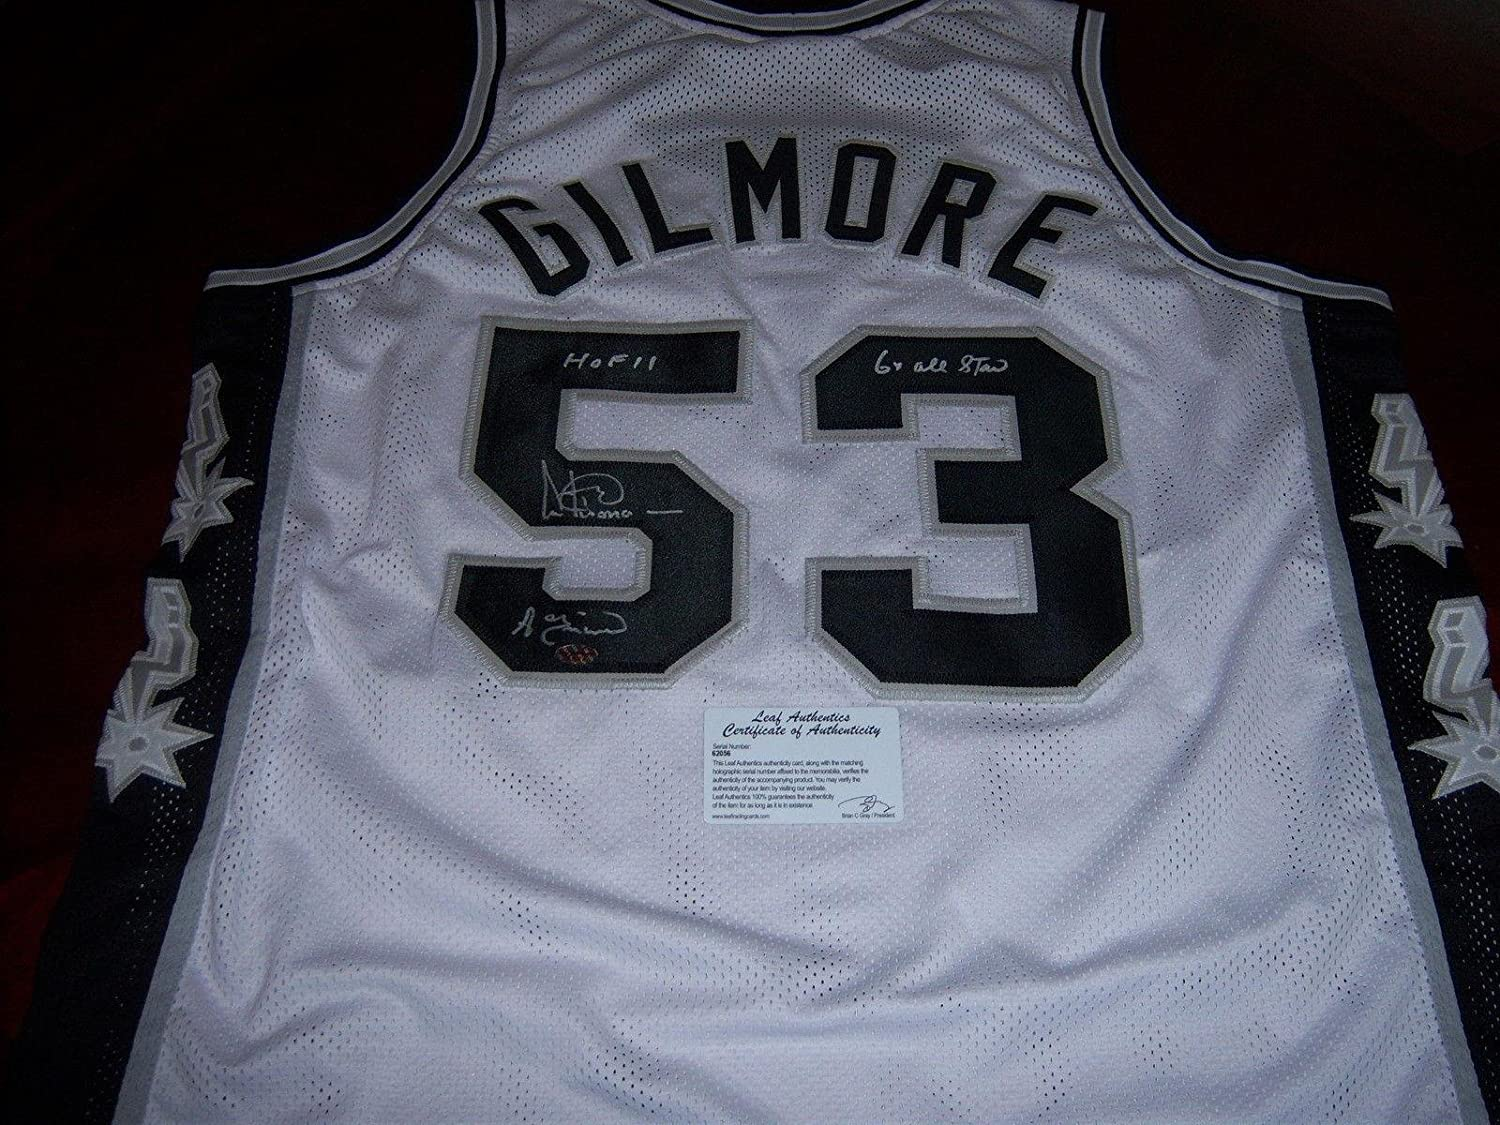 abb6bd9cb Amazon.com: Artis Gilmore Signed Jersey - Hof 11 a train 6x Allstar Leaf  coa - Autographed NBA Jerseys: Sports Collectibles